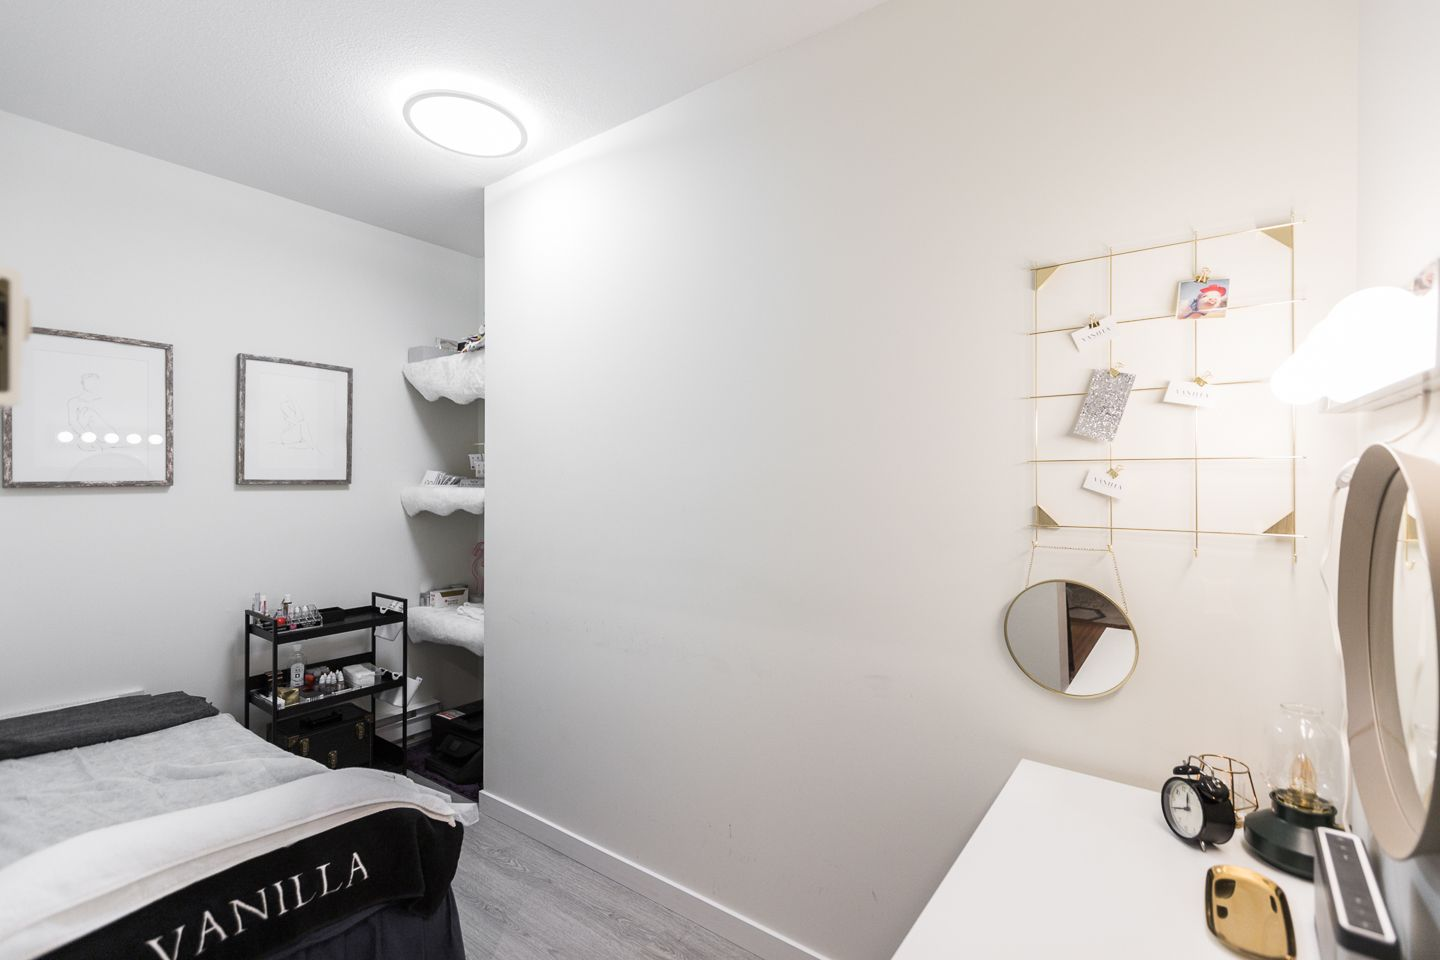 Photo 8: Photos: #8-3701 THURSTON ST in BURNABY: Central Park BS Condo for sale (Burnaby South)  : MLS®# R2572861